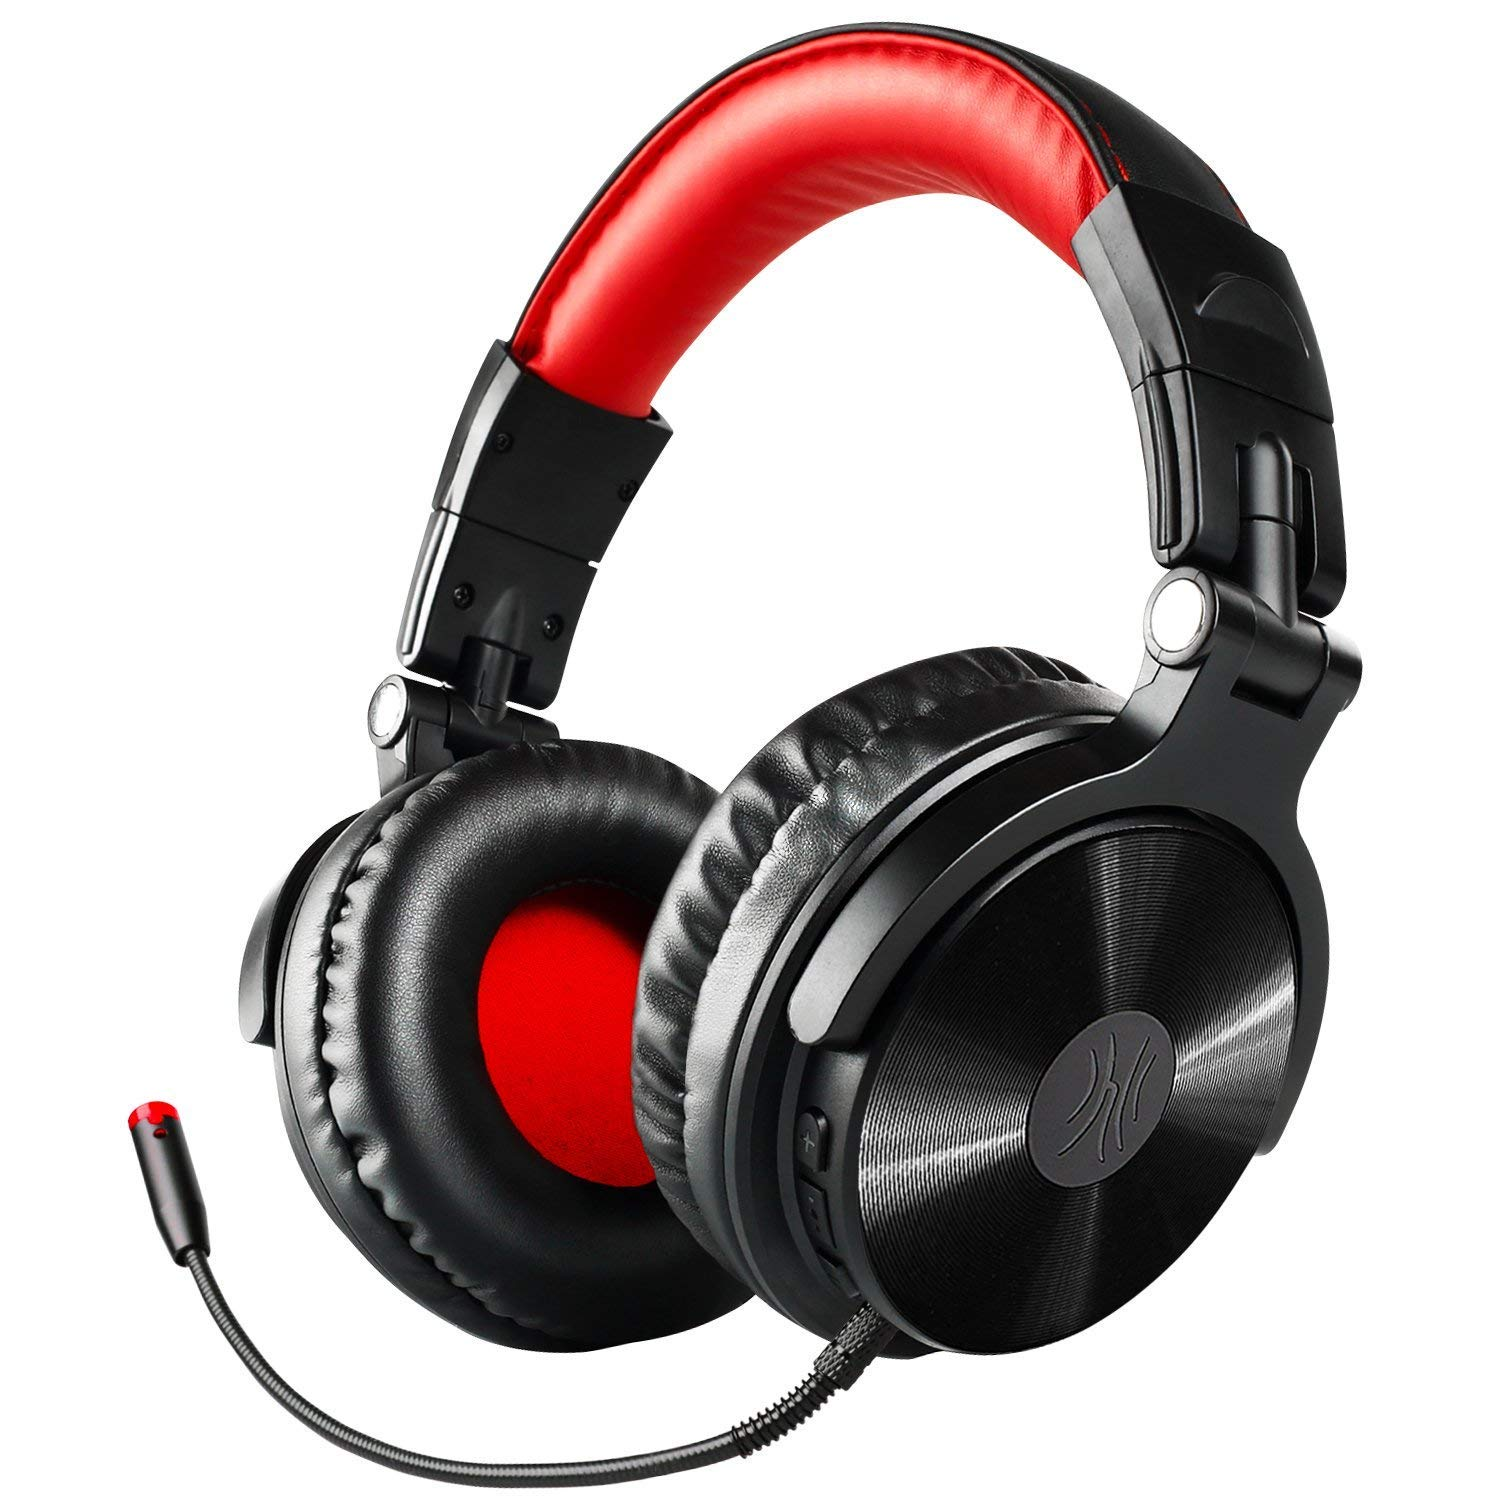 Bluetooth Headphones with Mic, Wireless Hi-Fi Headset with Extended Pluggable Microphone, Gaming Headset, 30 Hrs Playtime Bass Driven Sound for iPhone, Laptop, Tablets, Office, TV(Black-Red)